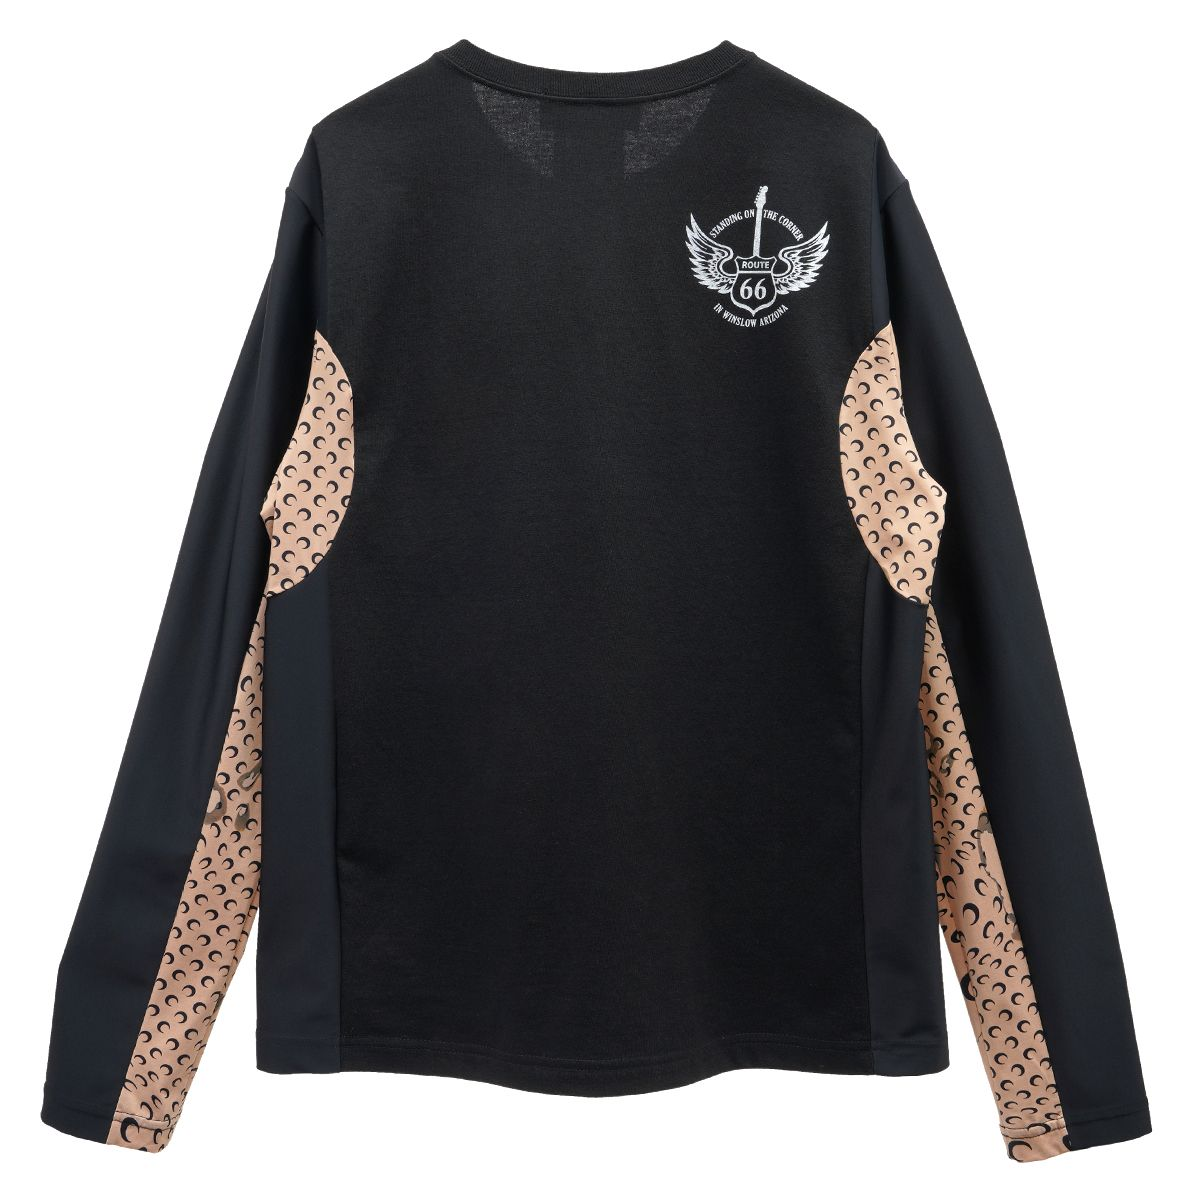 MARINE SERRE REGENERATED LONG SLEEVE T-SHIRT 3 / 00 : BLACK